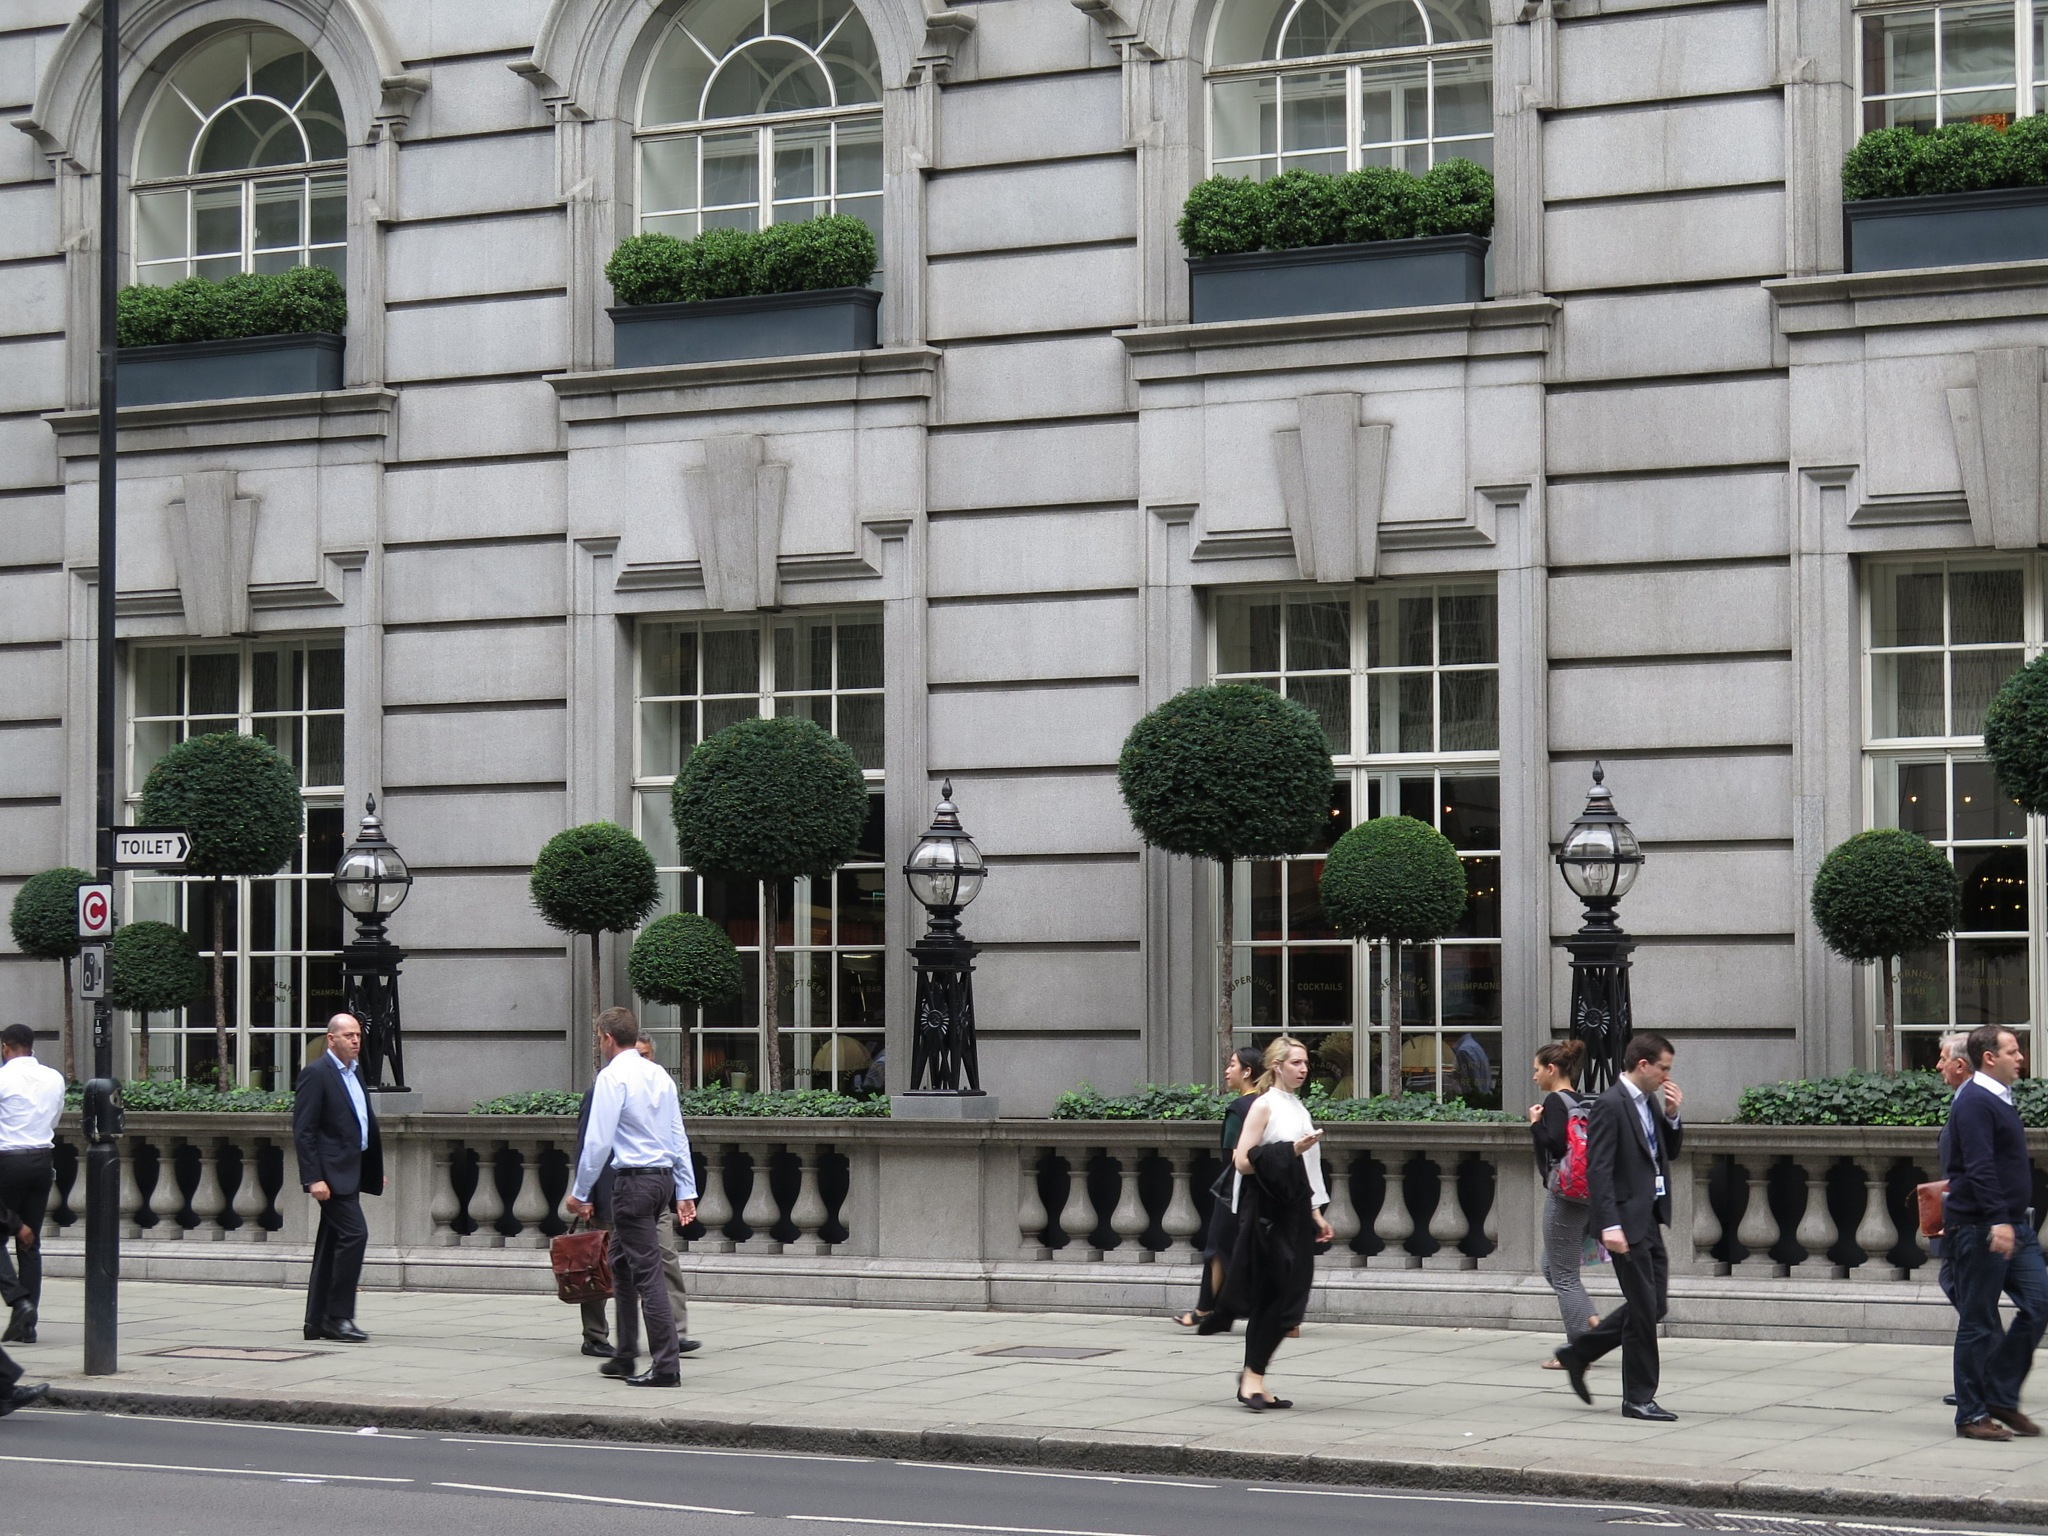 Green Thoughts in London's Holborn by Tim Bourne